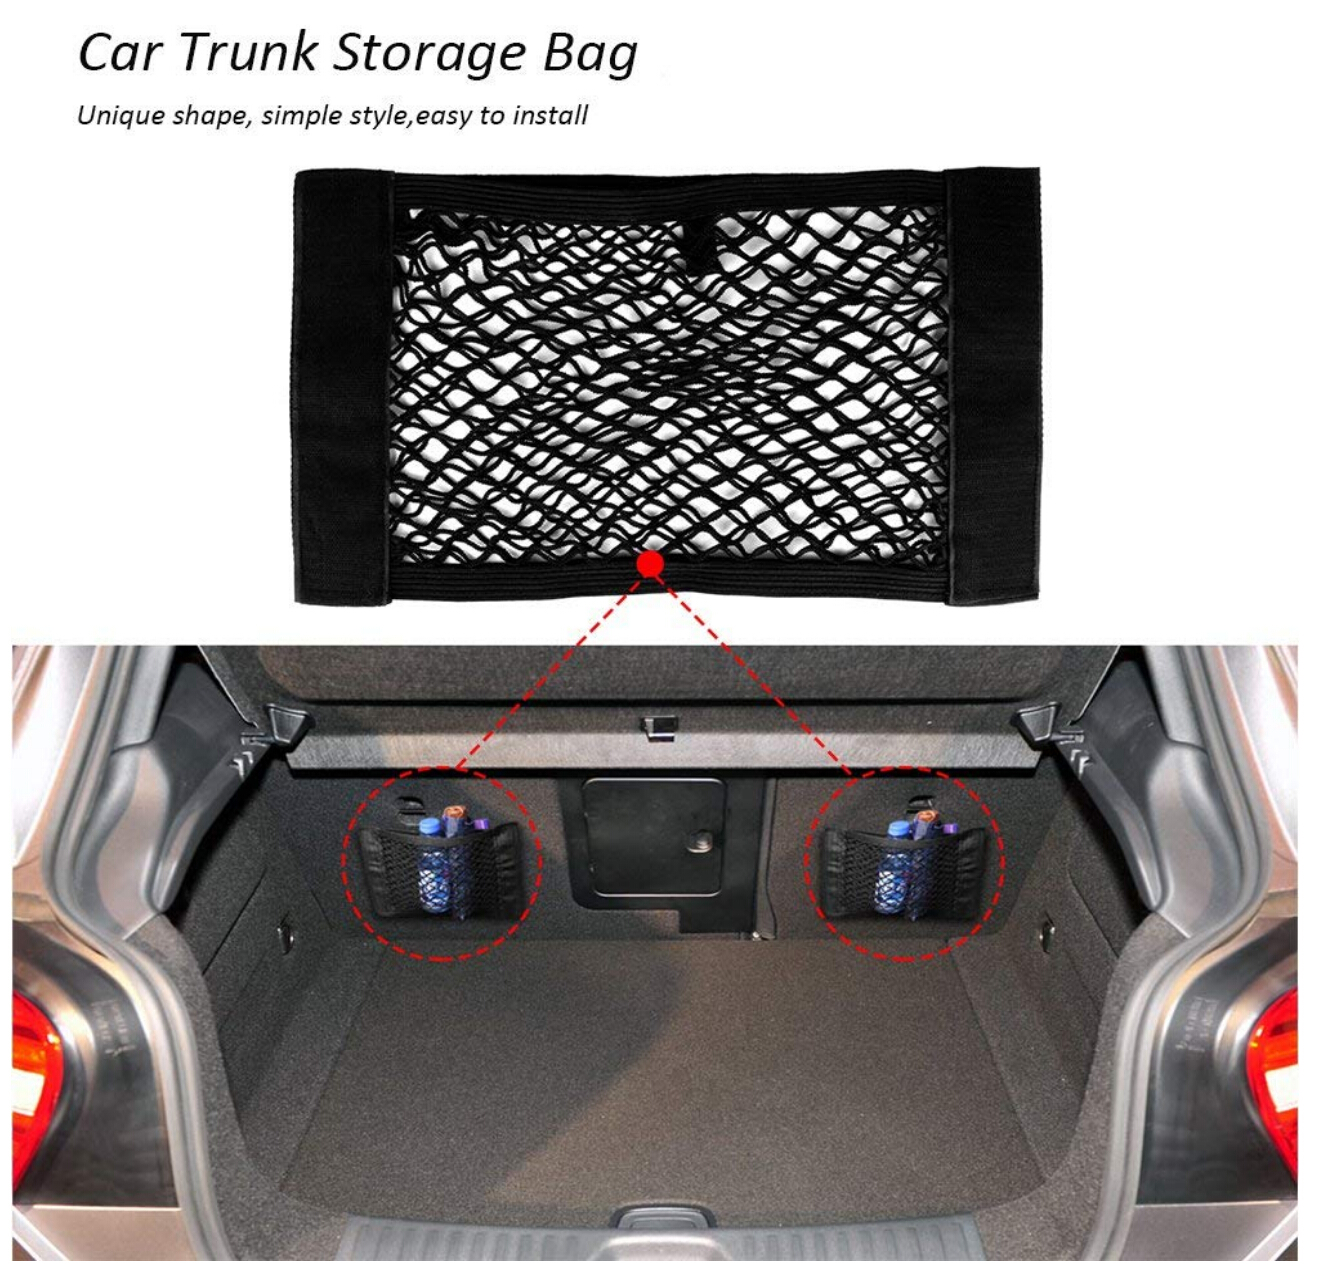 2018 NEW Hot Selling Car Accessories Car Styling trunk Storage bag Stickers For Dacia duster logan sandero stepway lodgy mcv 2-in Car Tax Disc Holders from Automobiles & Motorcycles